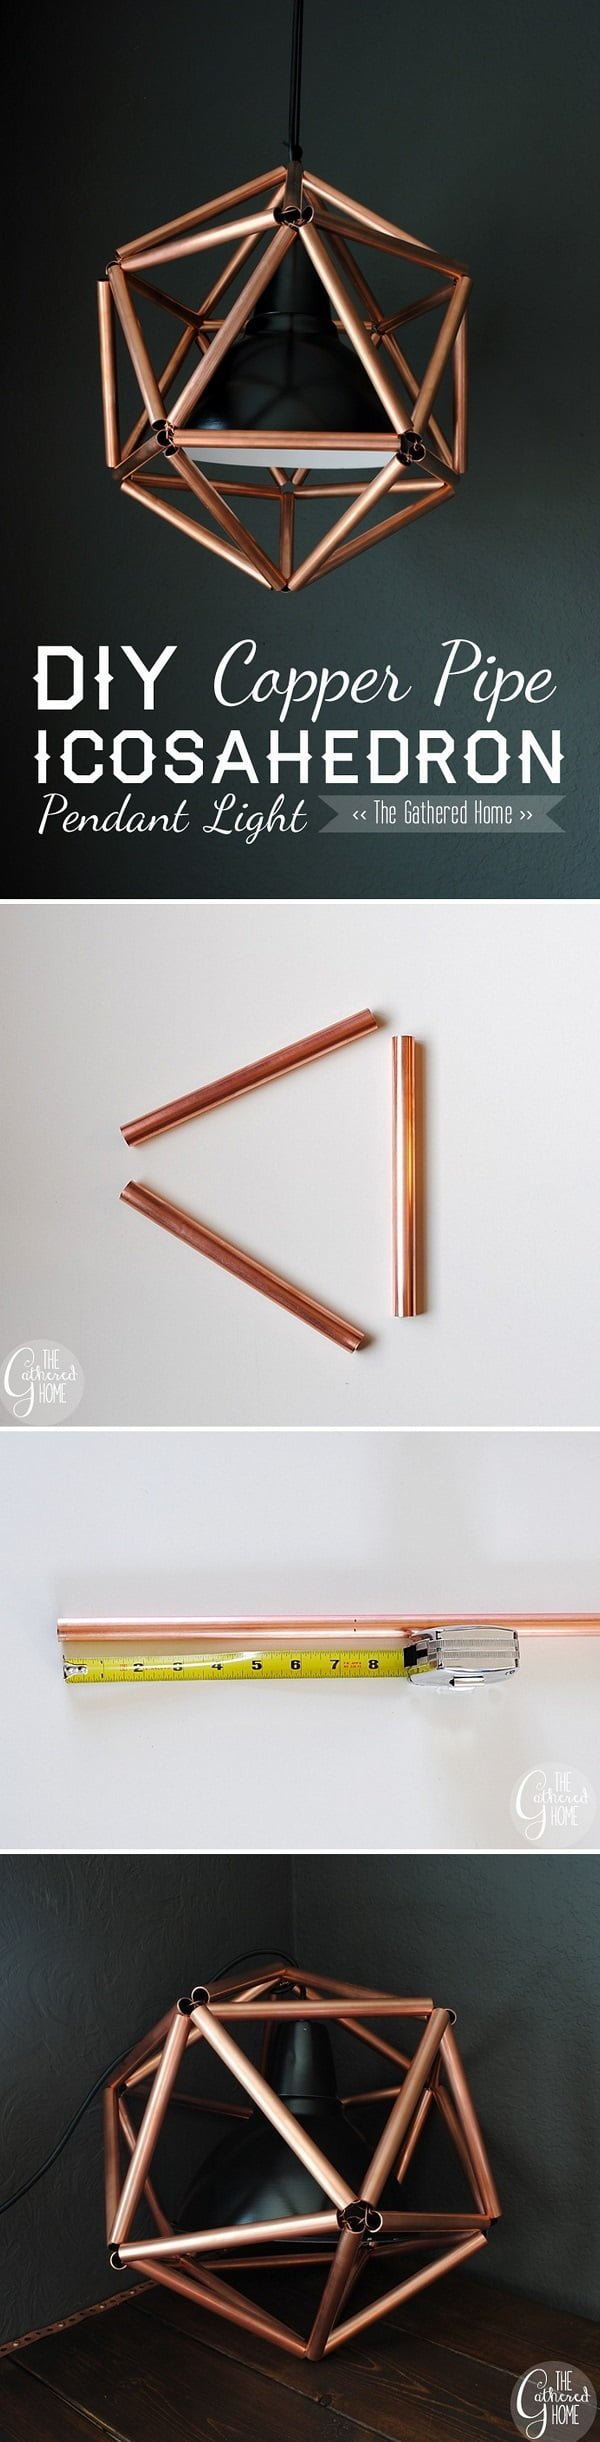 16 Trendy DIY Ideas to Decorate with Copper - Check out the tutorial on how to make this modern design #DIY #copper pendant light #homedecor